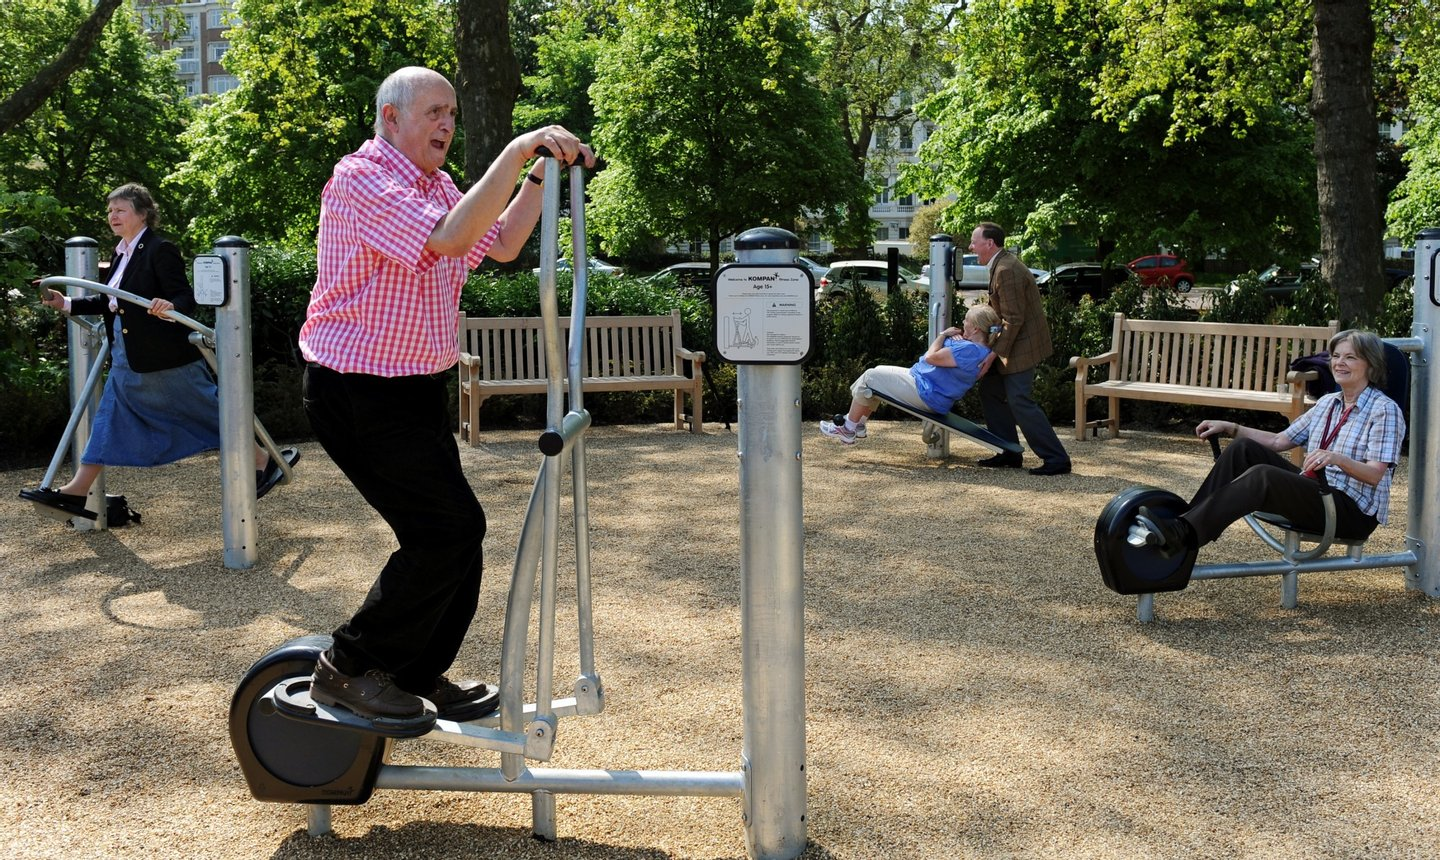 Winston Fletcher (2nd L) uses an exercise machine alongside other elderly participants during the official opening of the first pensioners' playground in Hyde Park in London on May 19, 2010. The outdoor facility features fun fitness equipment that offers a range of exercises to improve strength and flexibility and help adults continue active and healthy lifestyles in later years. Play areas for older people are popular in China and parts of Europe, but this is the first of its kind in London. AFP PHOTO / Adrian Dennis (Photo credit should read ADRIAN DENNIS/AFP/Getty Images)